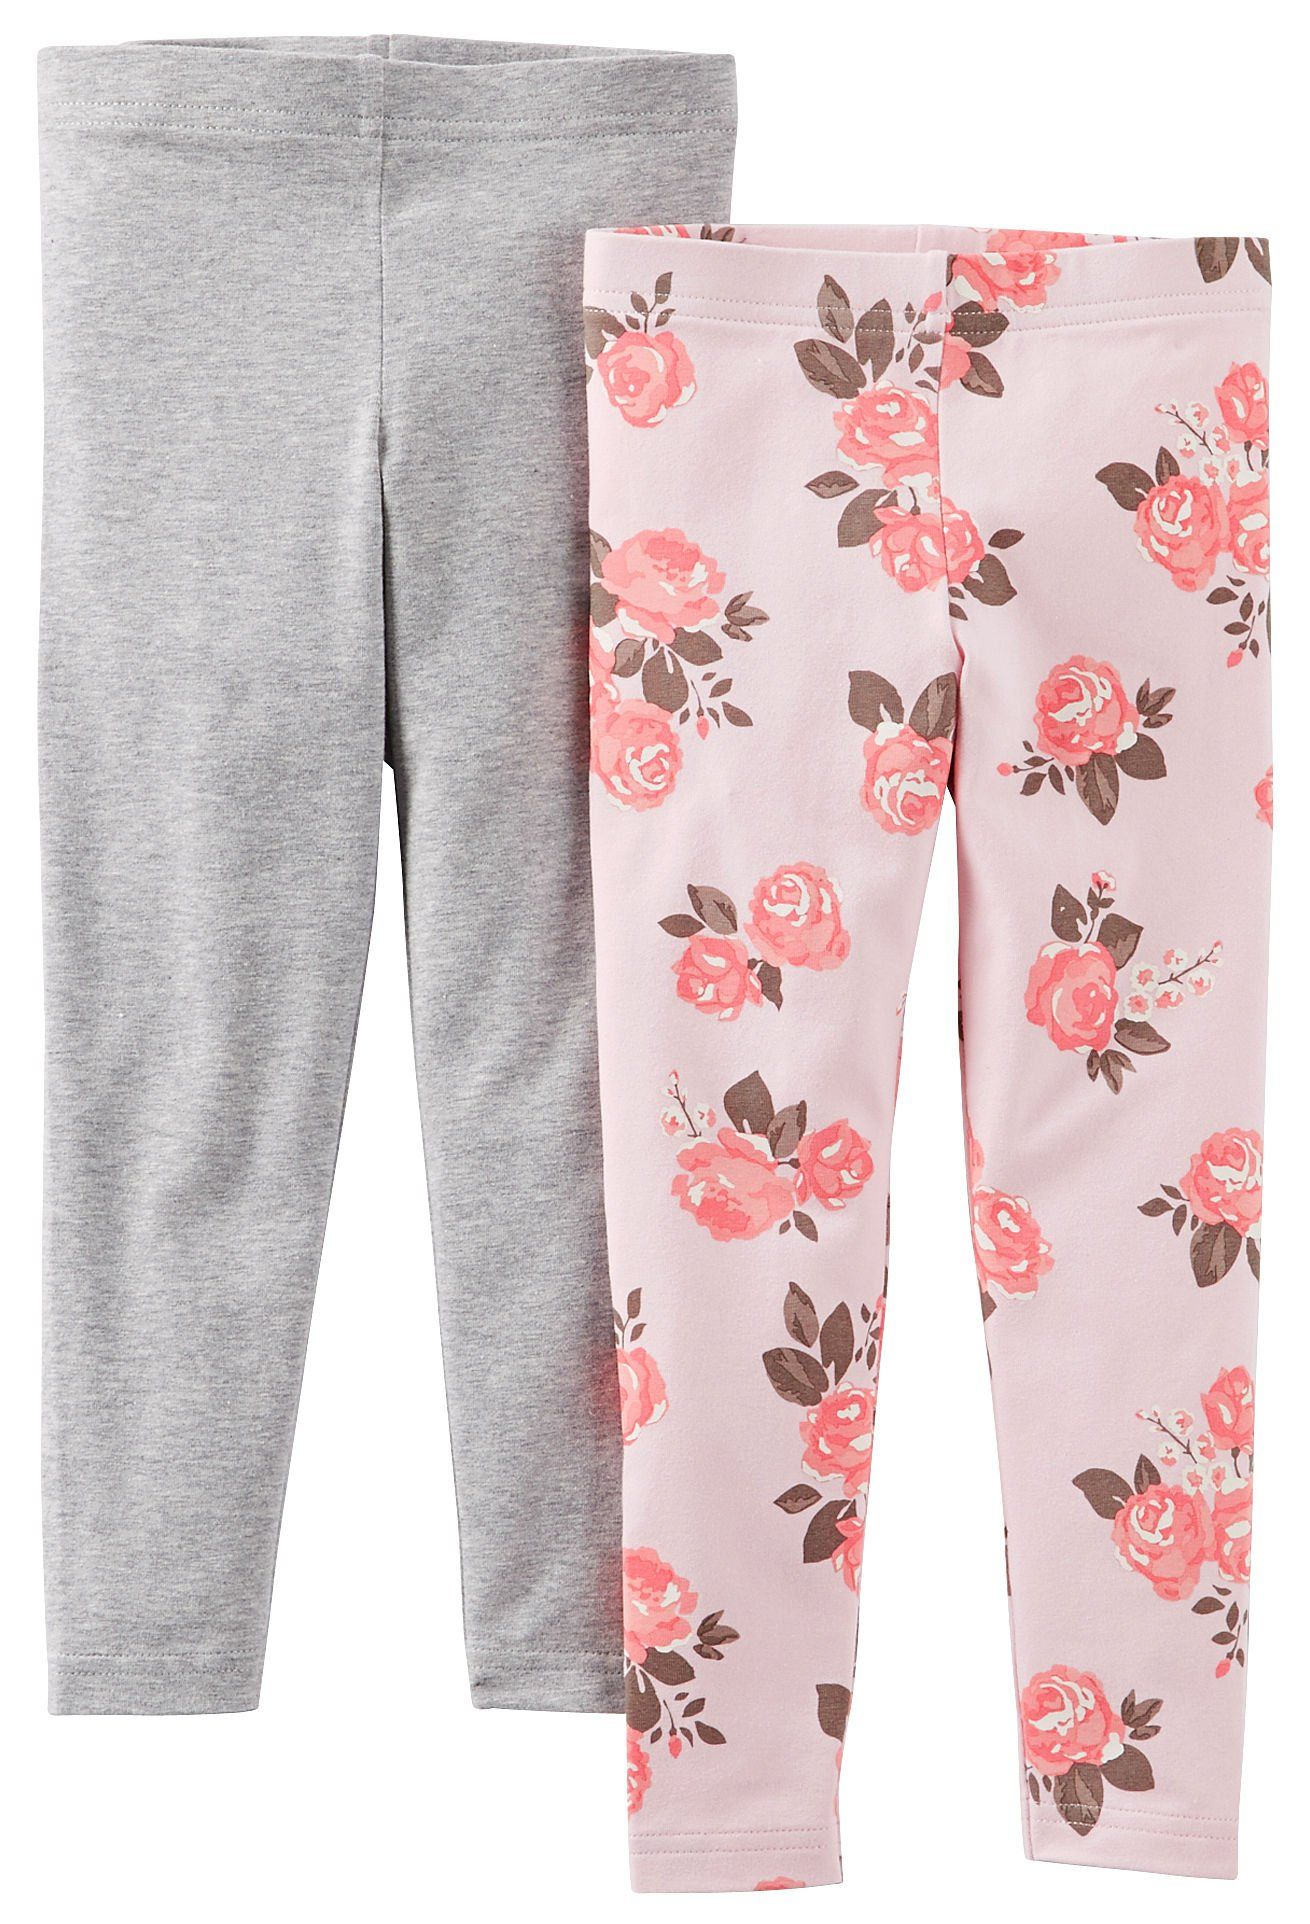 38b68944c42f7 Carter's Little Girls' 2 Pack Leggings (Toddler/Kid) - Pink/Gray - 5 ...